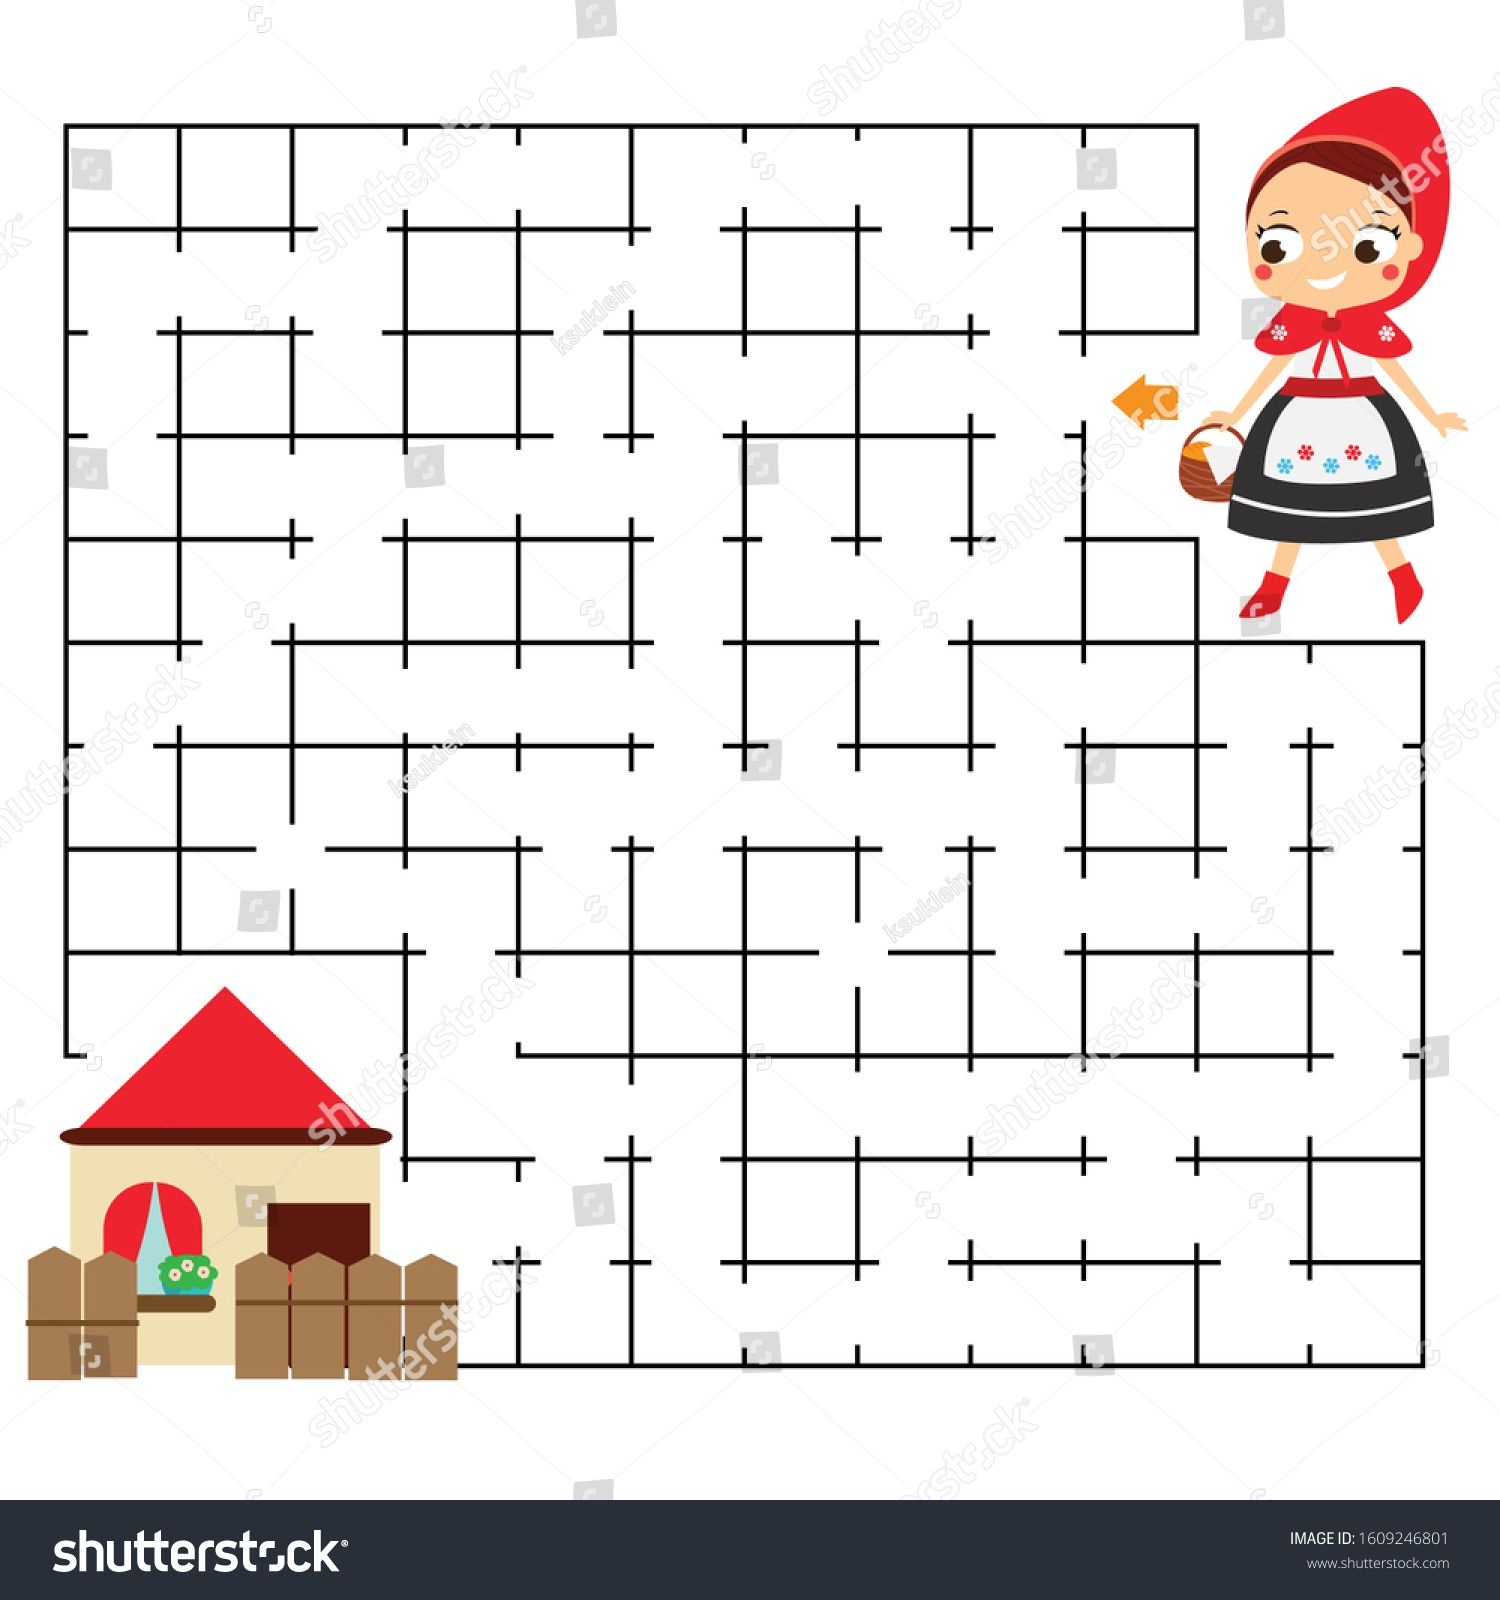 Maze Puzzle Help Red Riding Hood Find Home Activity For